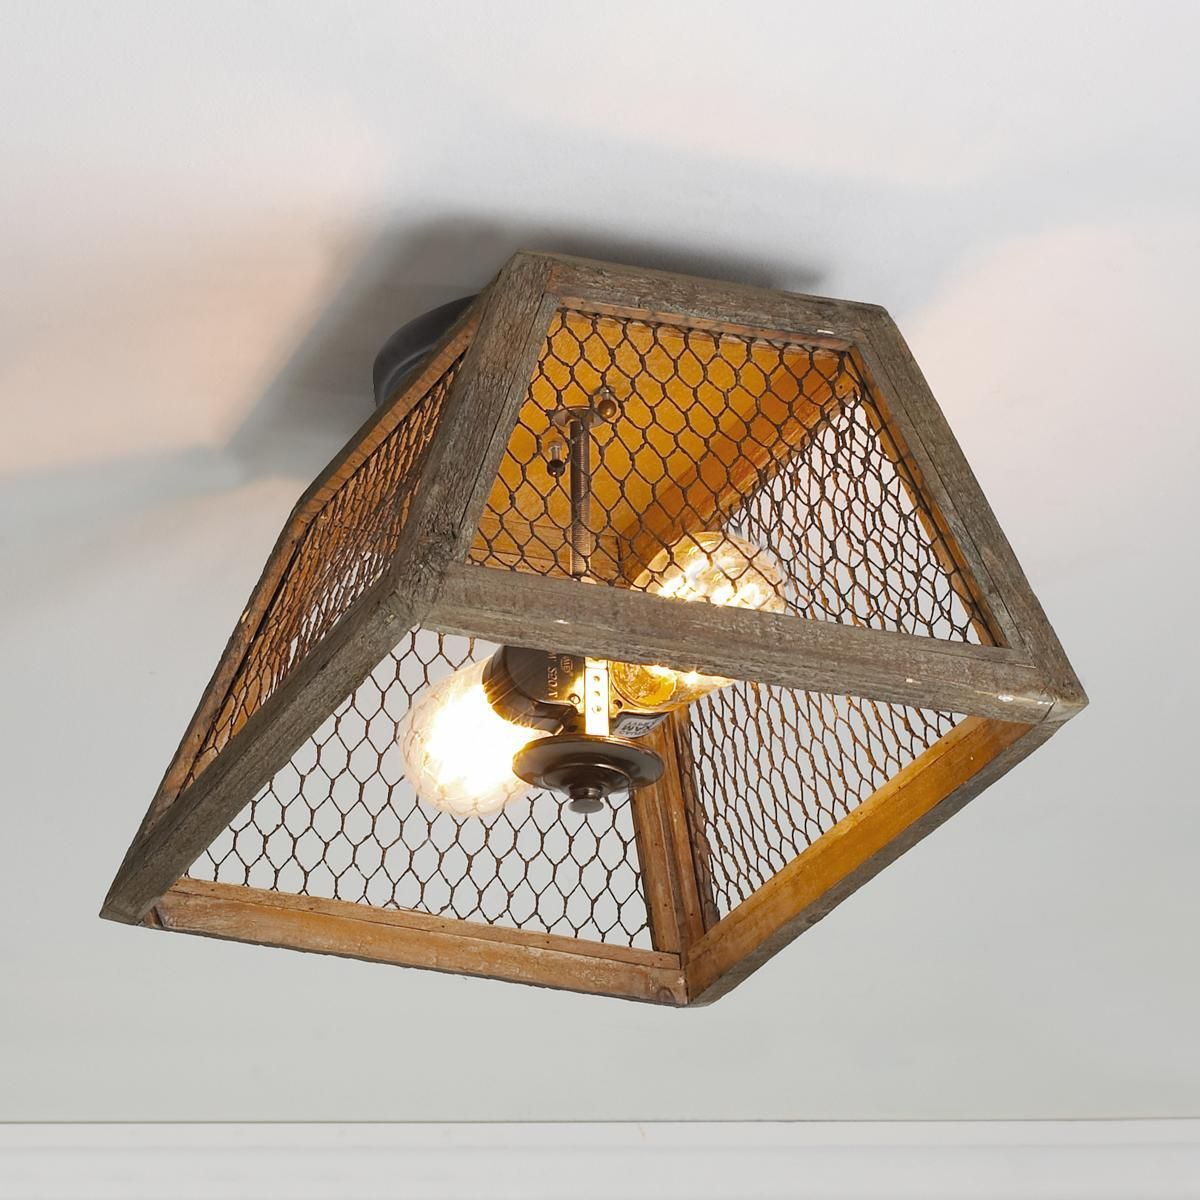 Chicken Wire Square Shade Ceiling Light | Lamps | Pinterest ...